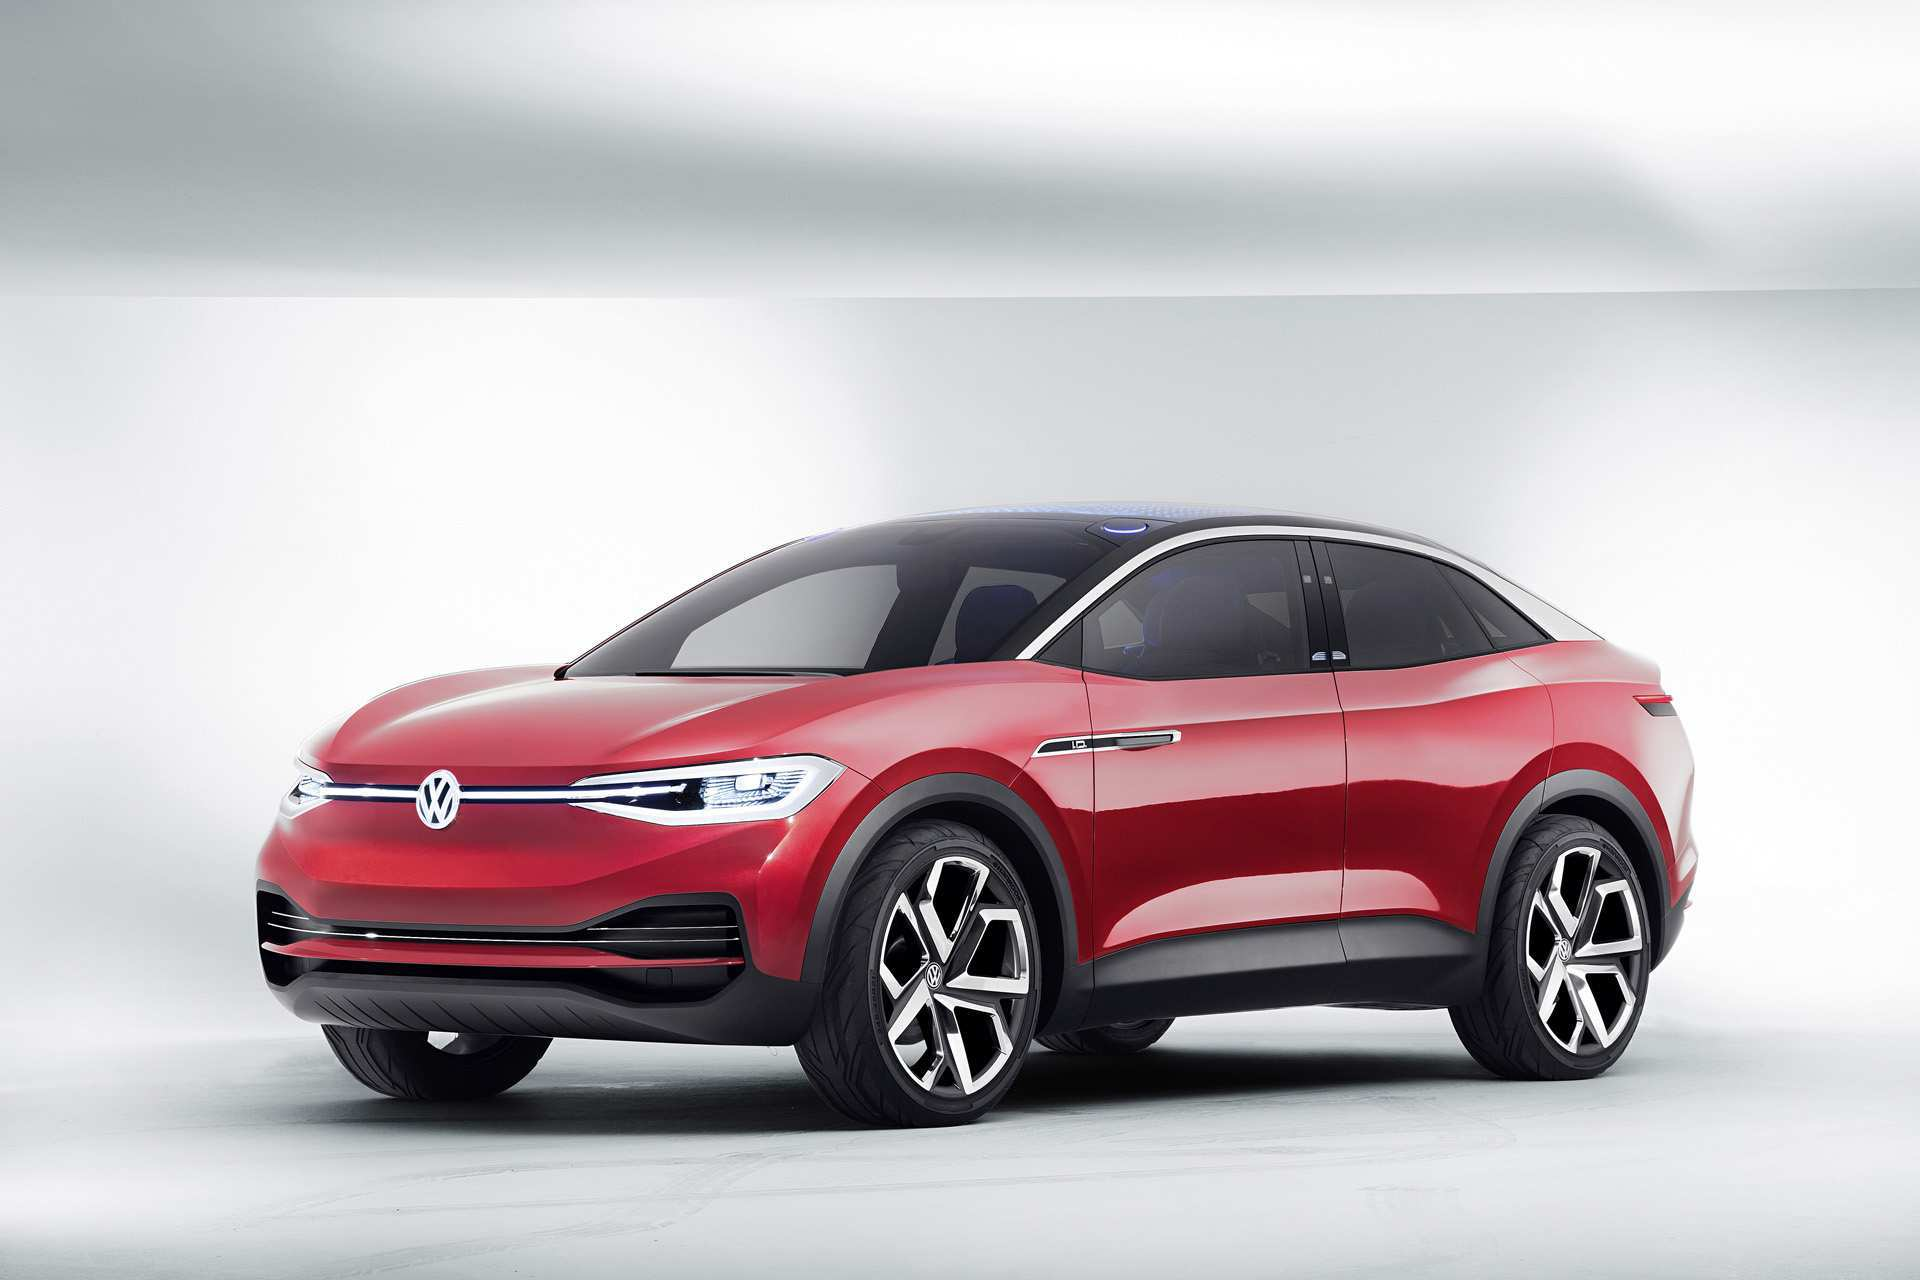 38 New Volkswagen Ev 2020 Redesign And Review